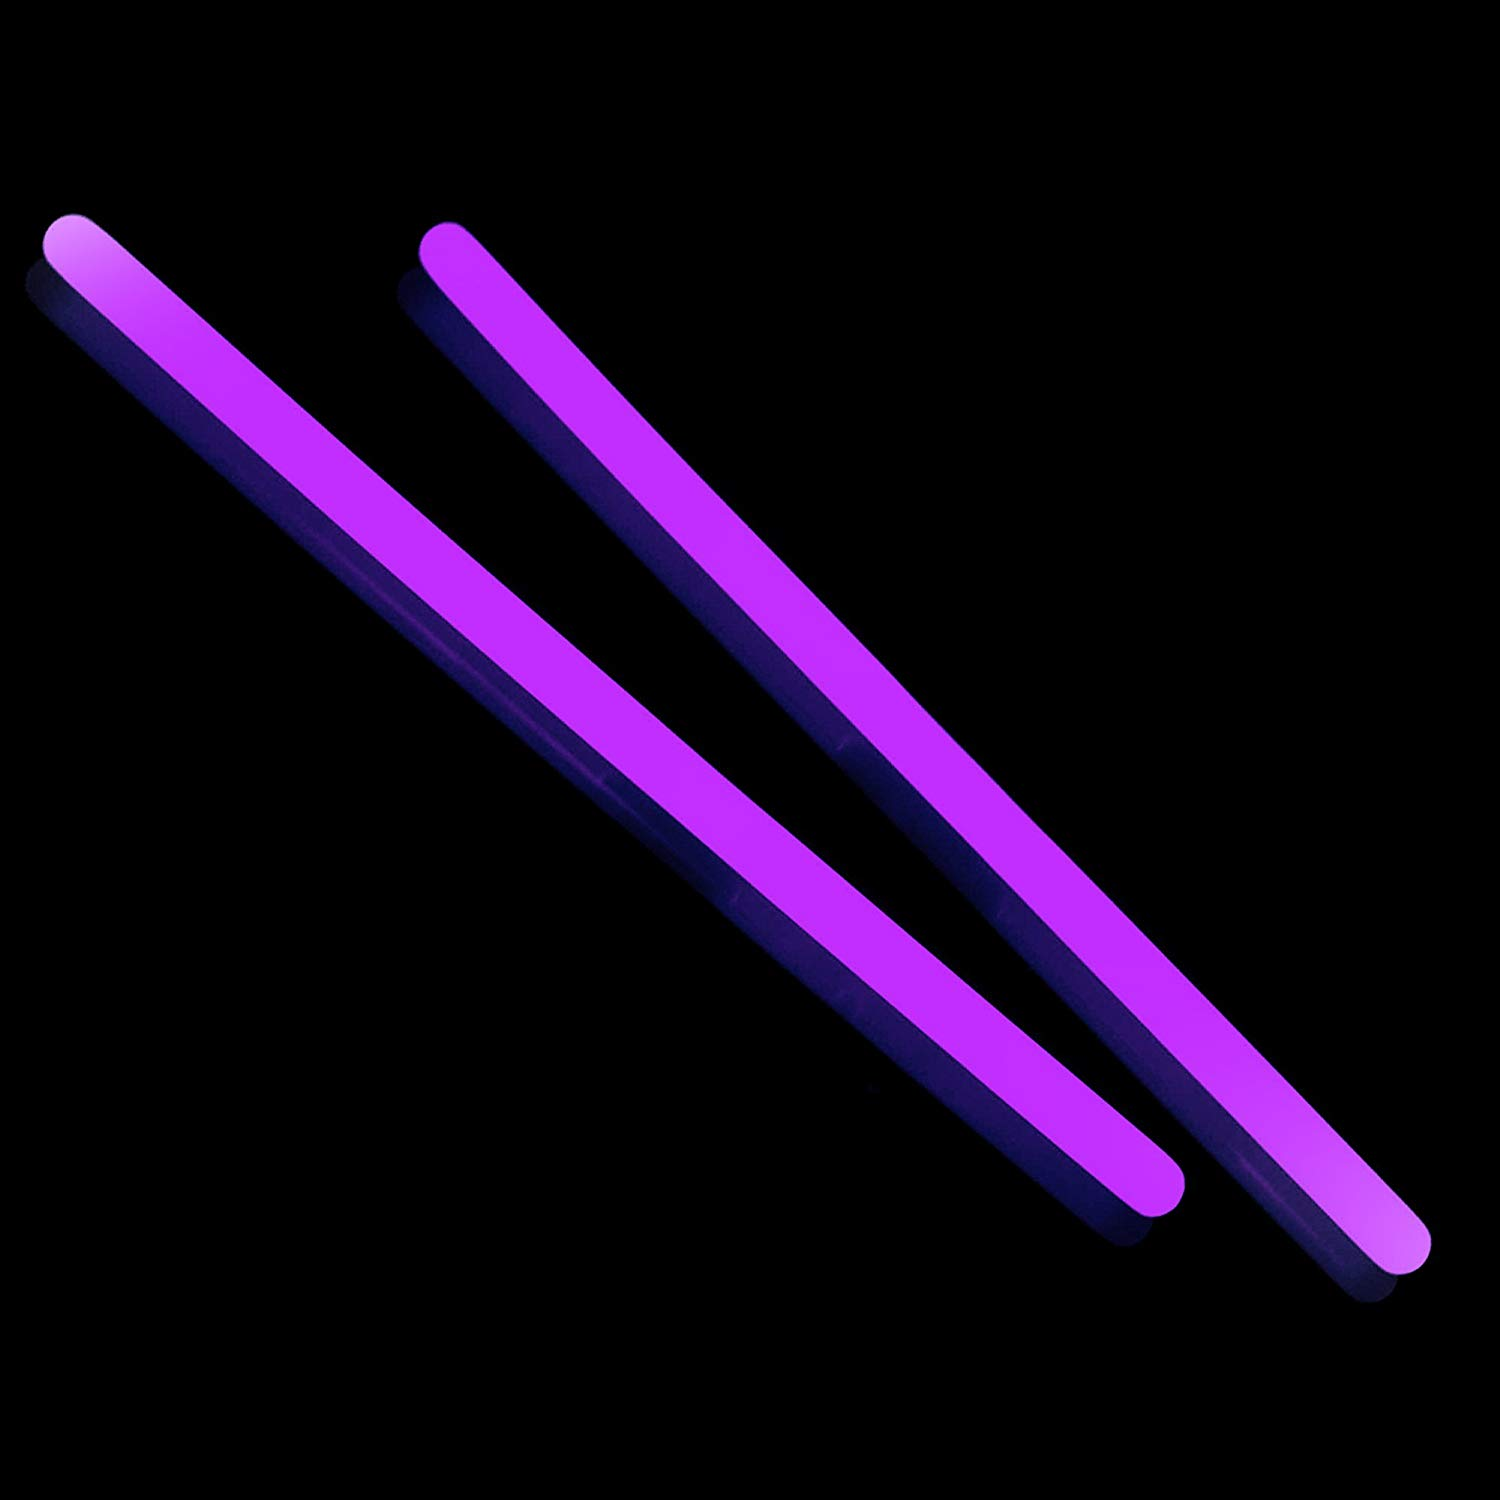 10 Inch Glow Sticks - Purple